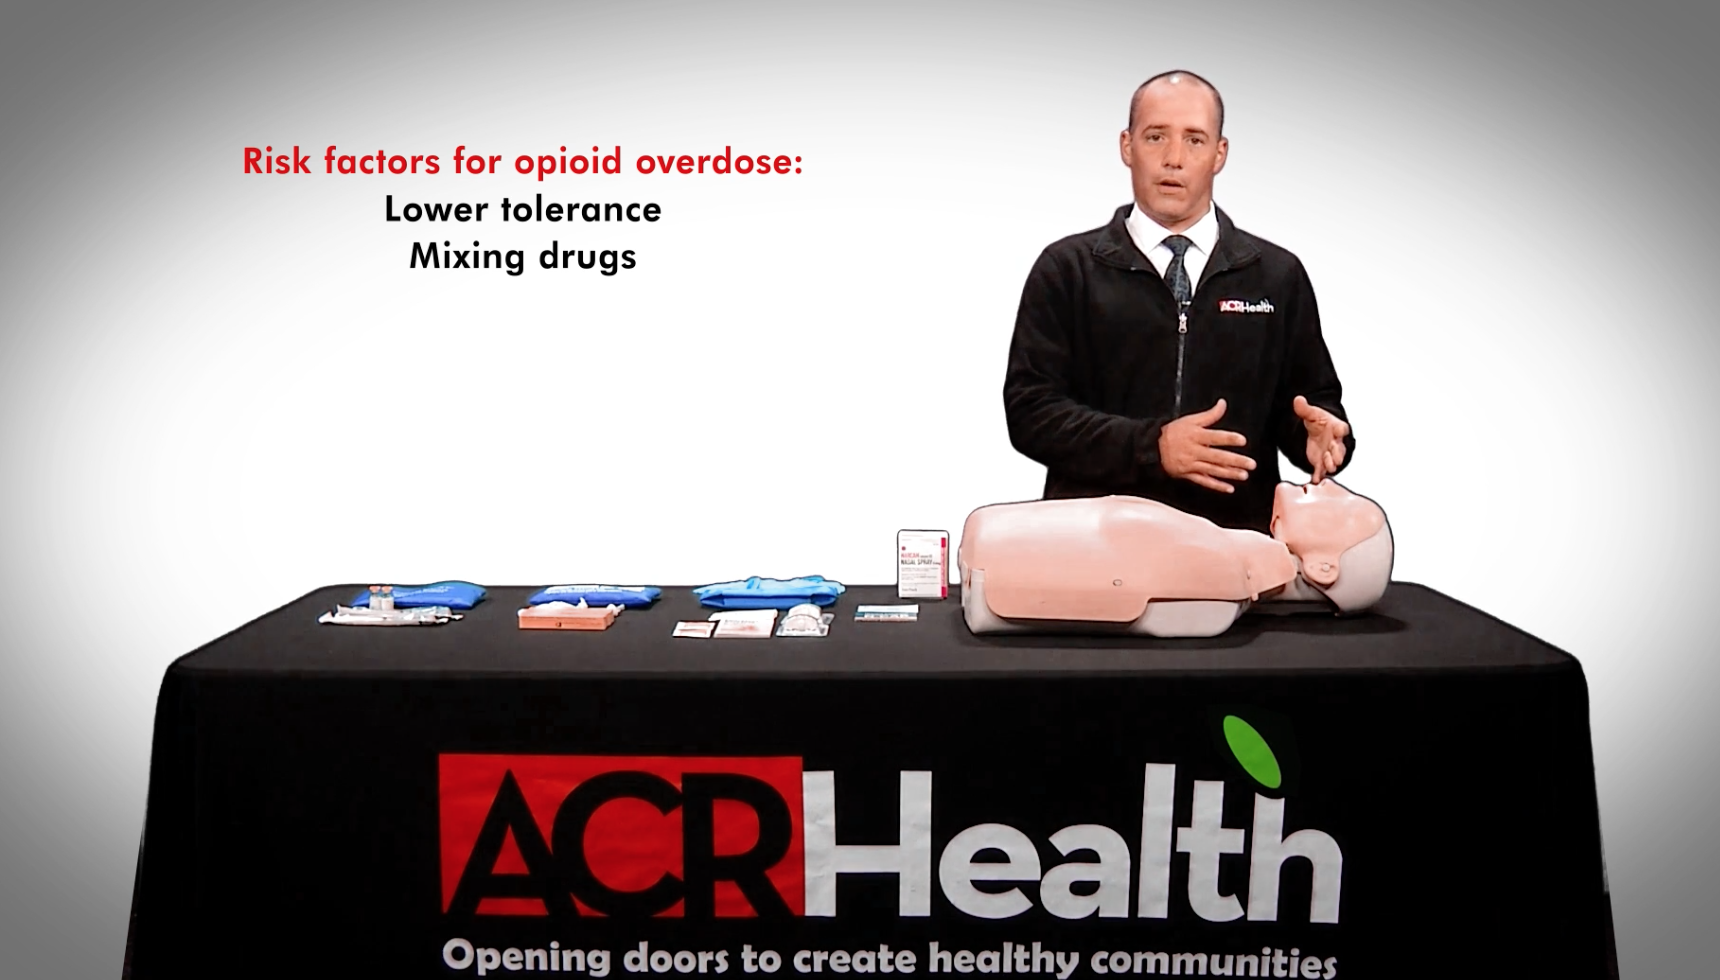 ACR Health Narcan Training (English, 13:29)